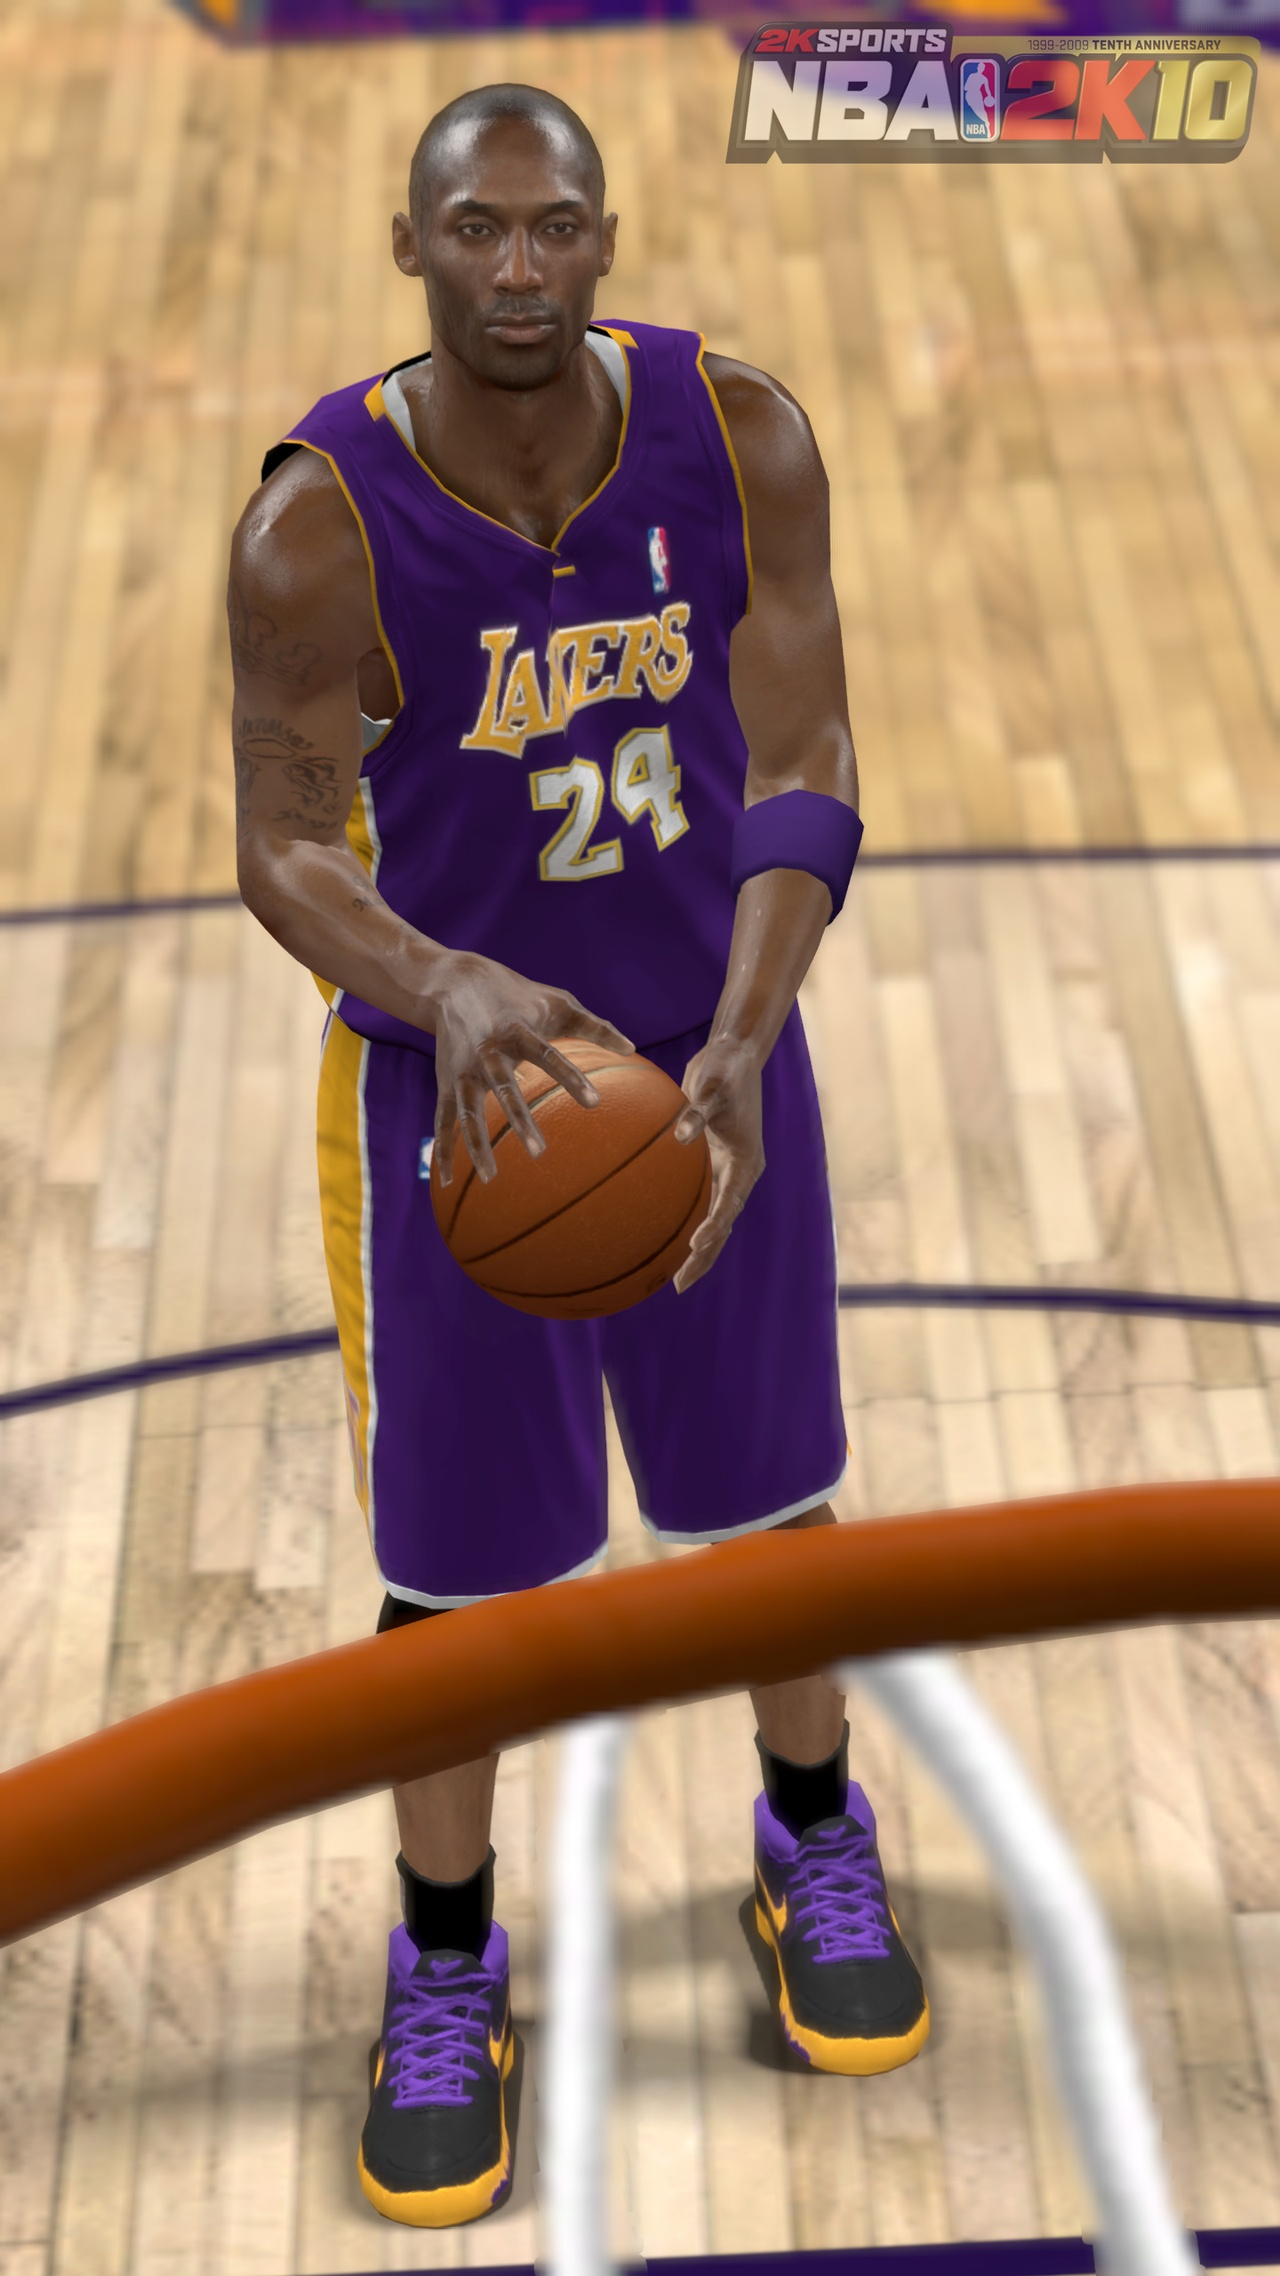 Have the Lakers got what it takes to win the 2010 finals?